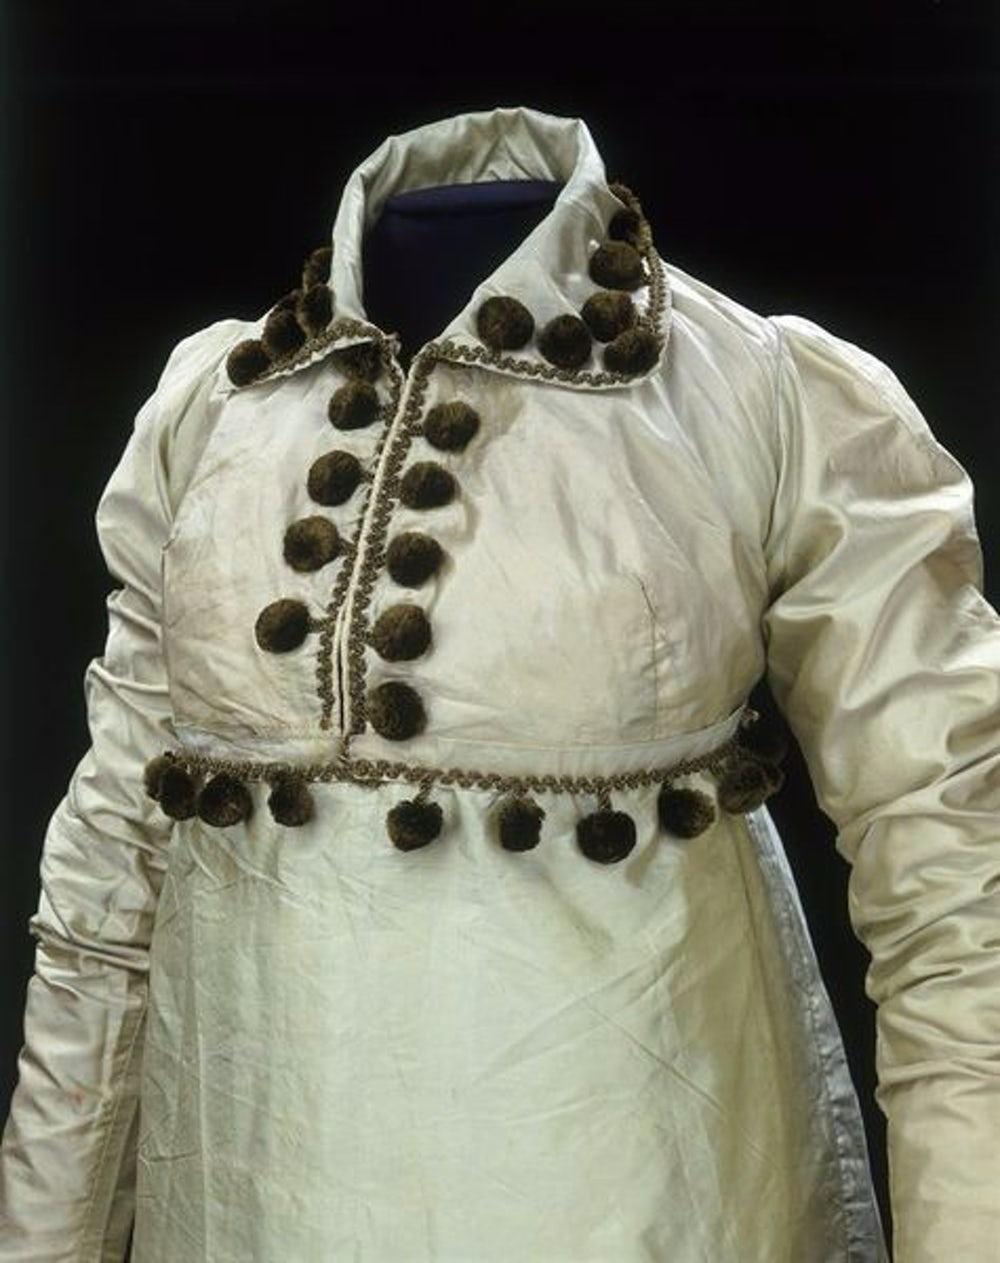 Dress from 1810 Great Britain with a pom-pom trim.